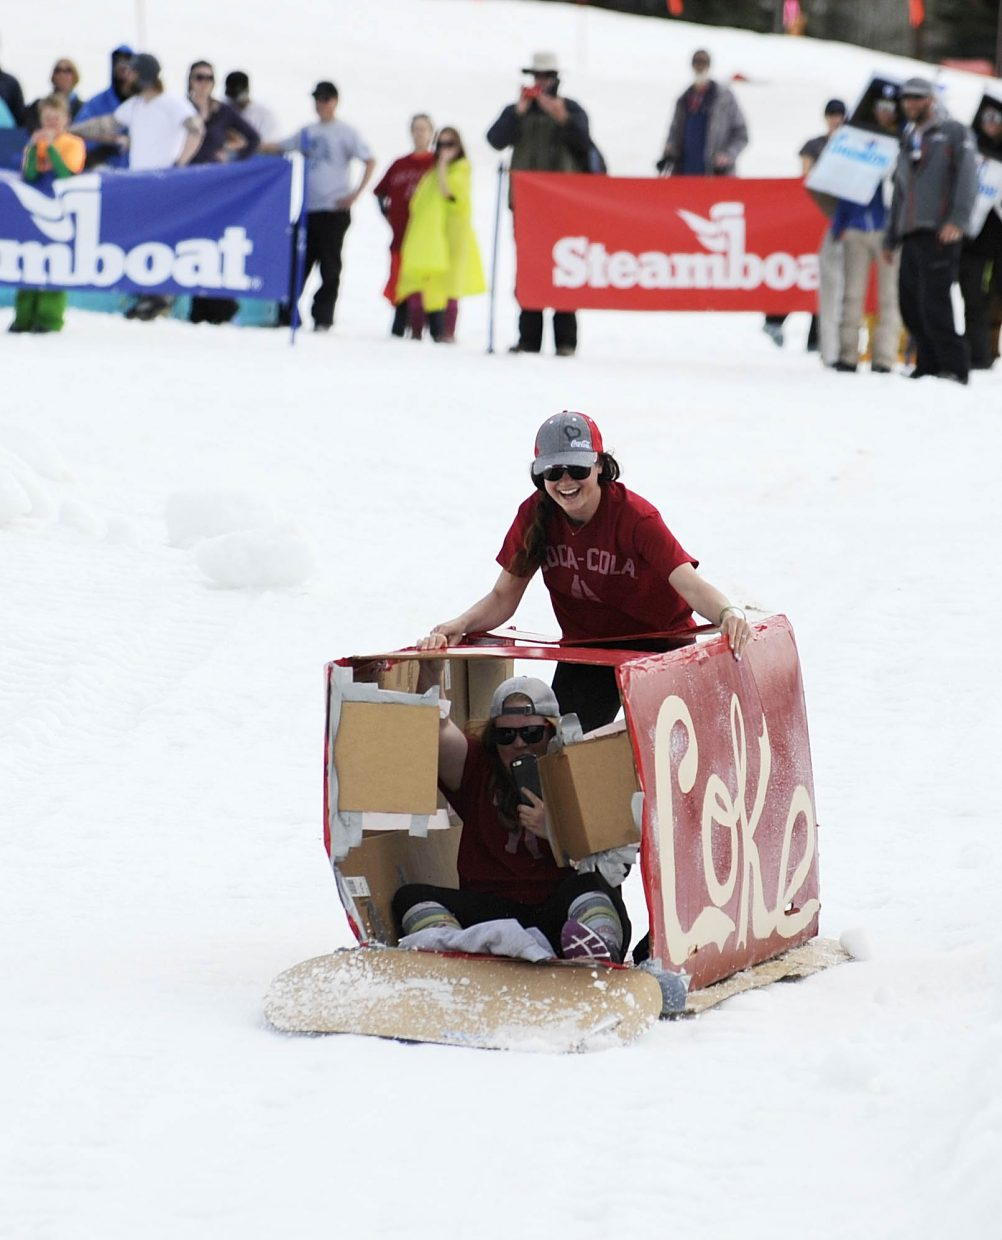 A Coke can comes down the course during the Cardboard Classic on Saturday at the Steamboat Ski Area.